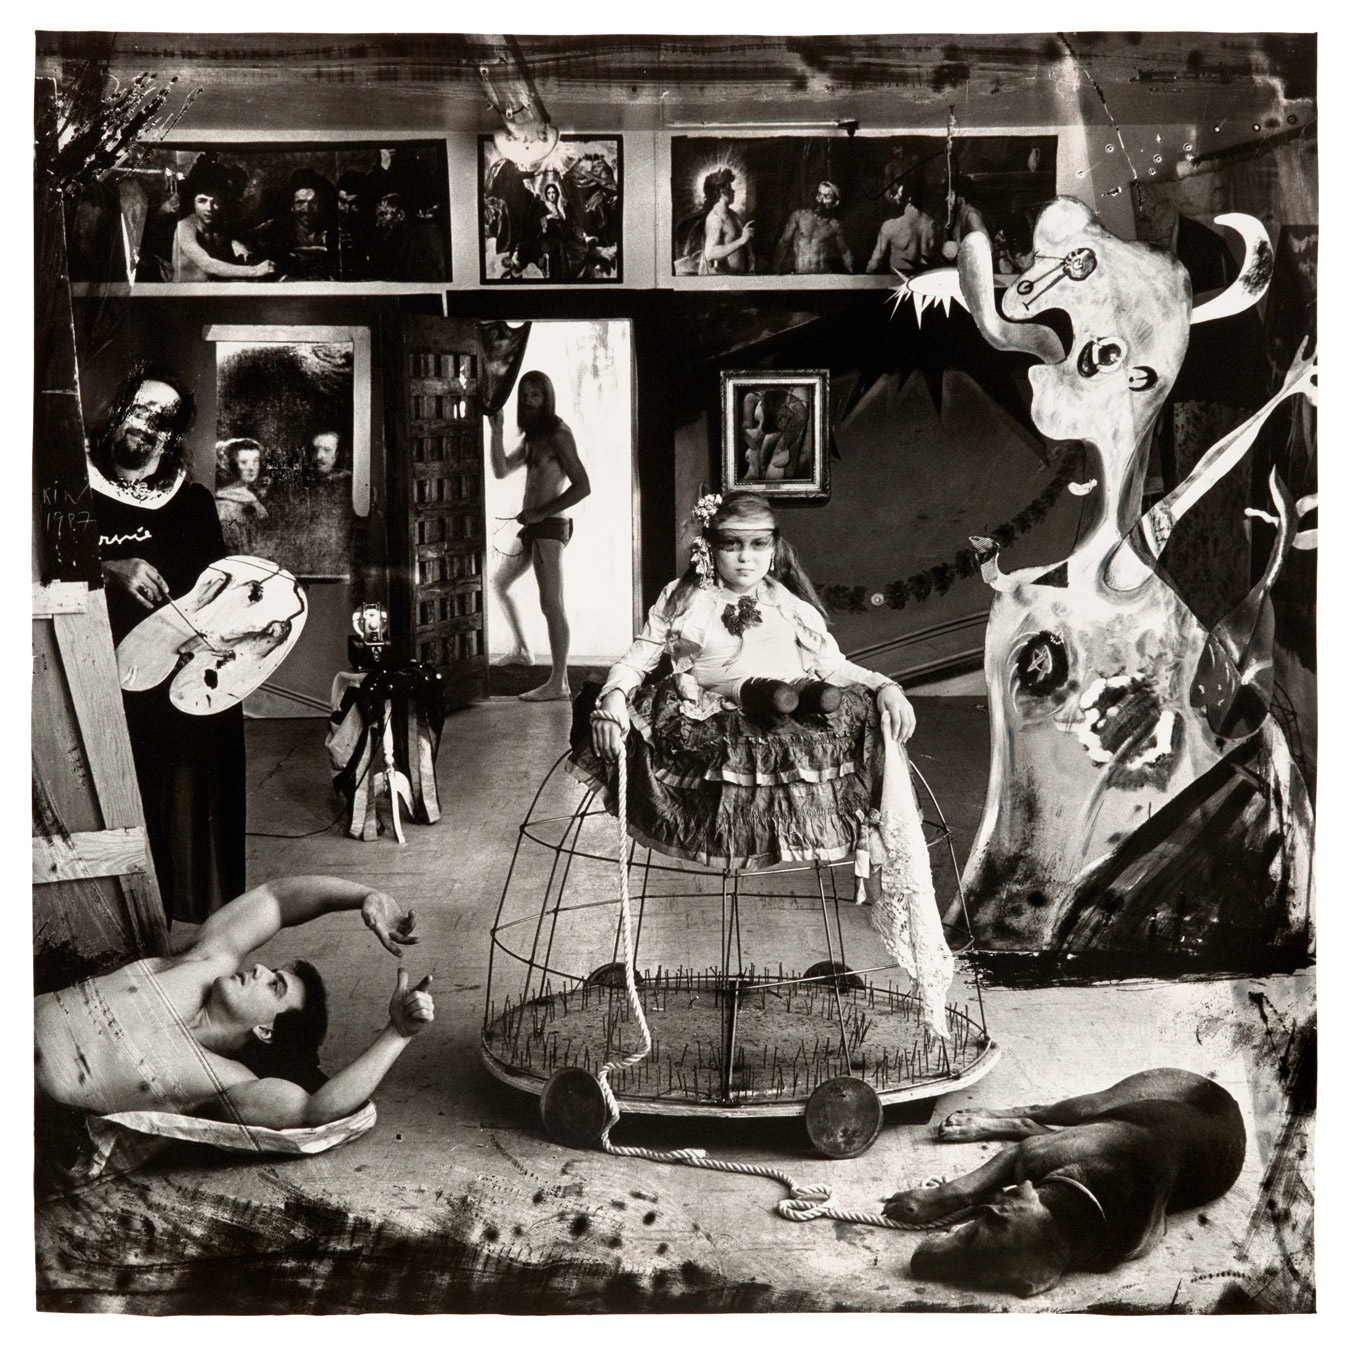 art blog - Joel-Peter Witkin - empty kingdom